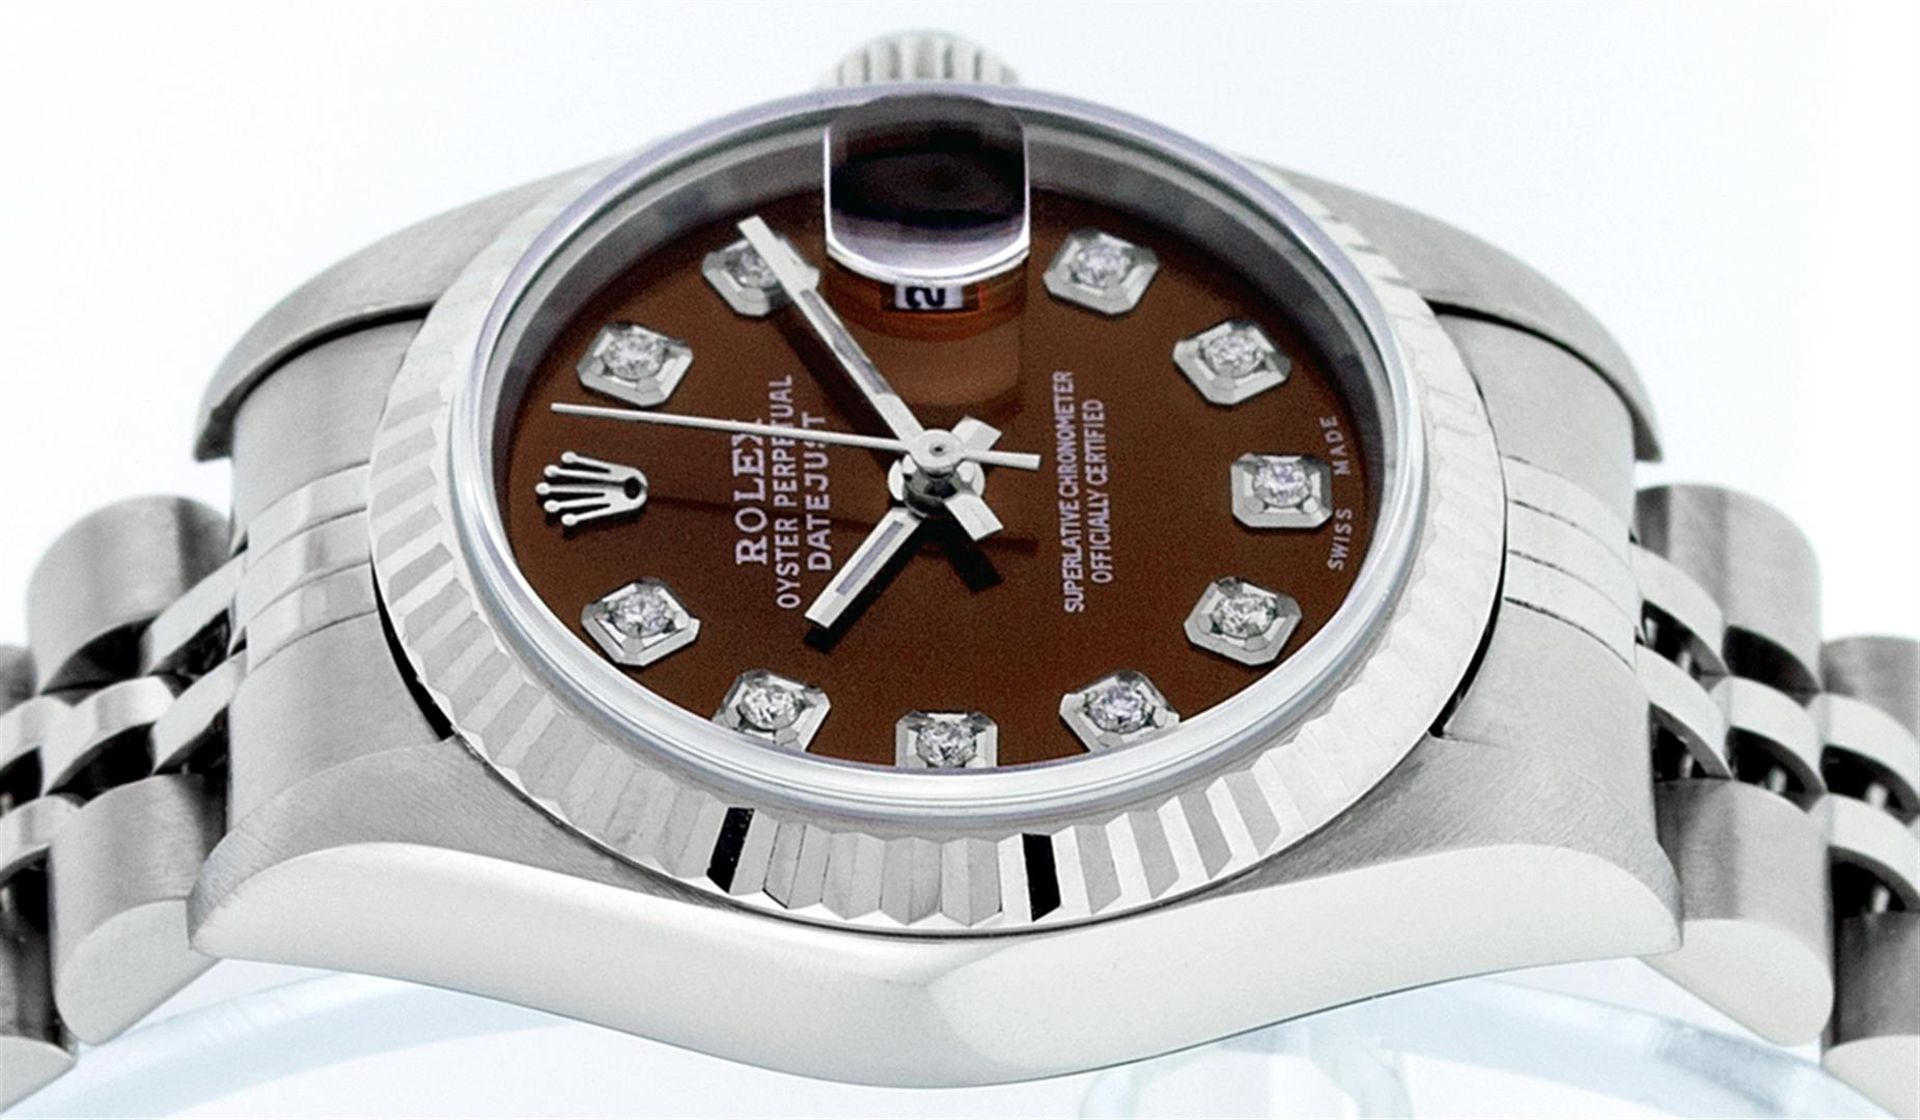 Rolex Ladies Stainless Steel Mother Of Pearl Diamond Quickset Datejust Wristwatc - Image 9 of 9